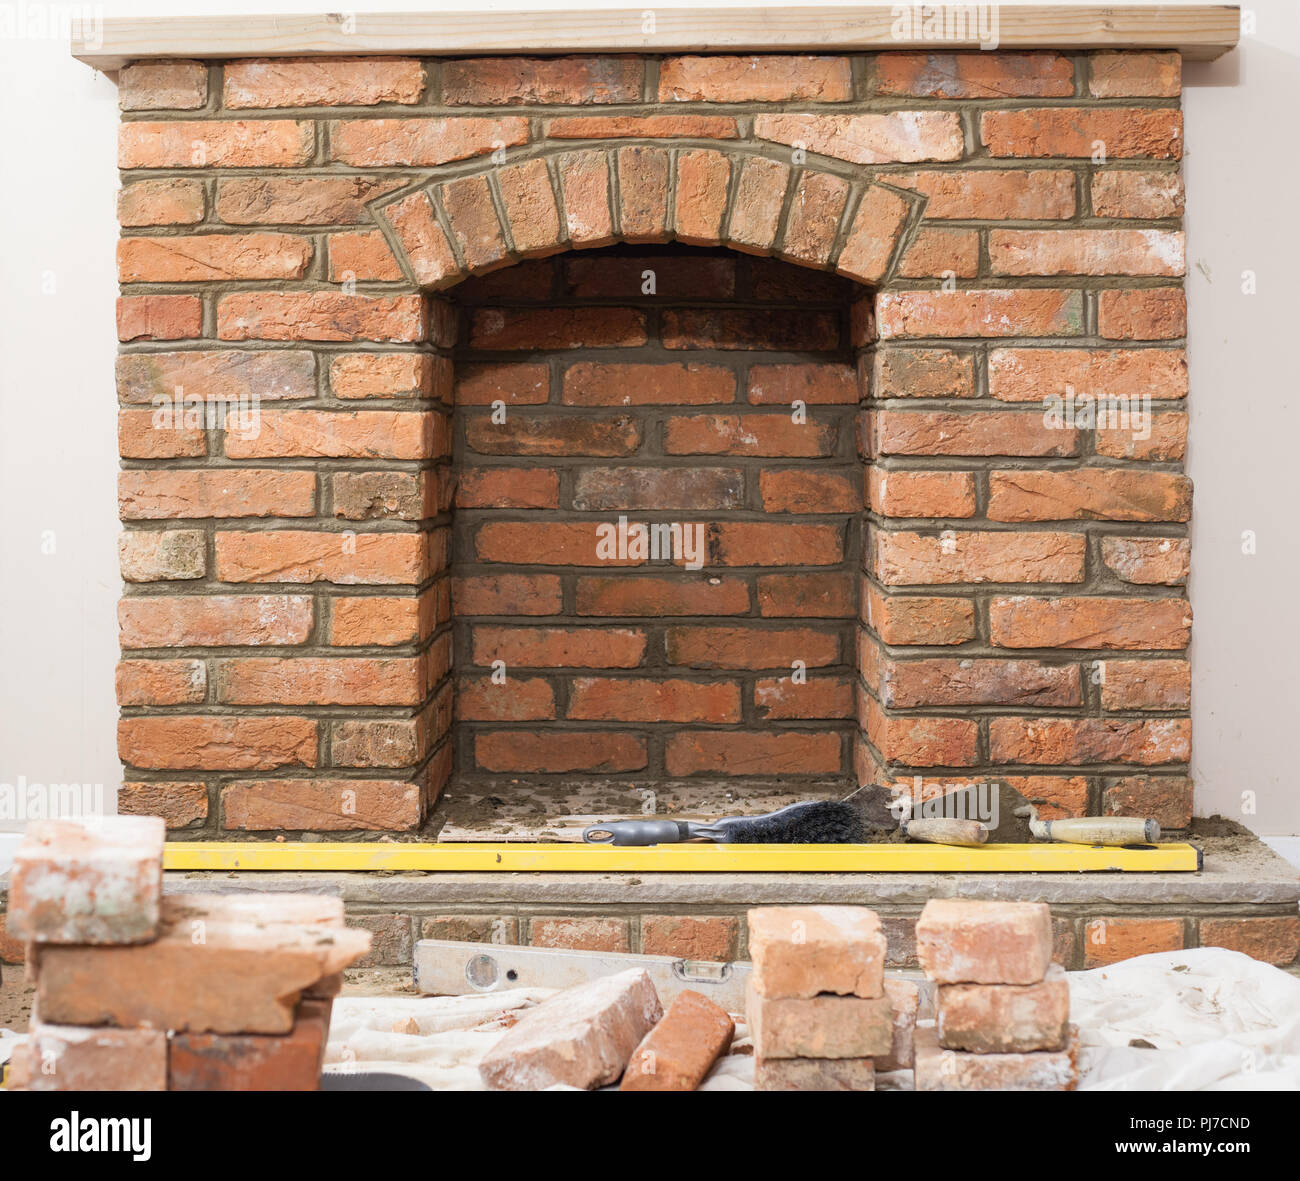 indoor diy project building fireplace in the house laying bricks template for the arch. Black Bedroom Furniture Sets. Home Design Ideas